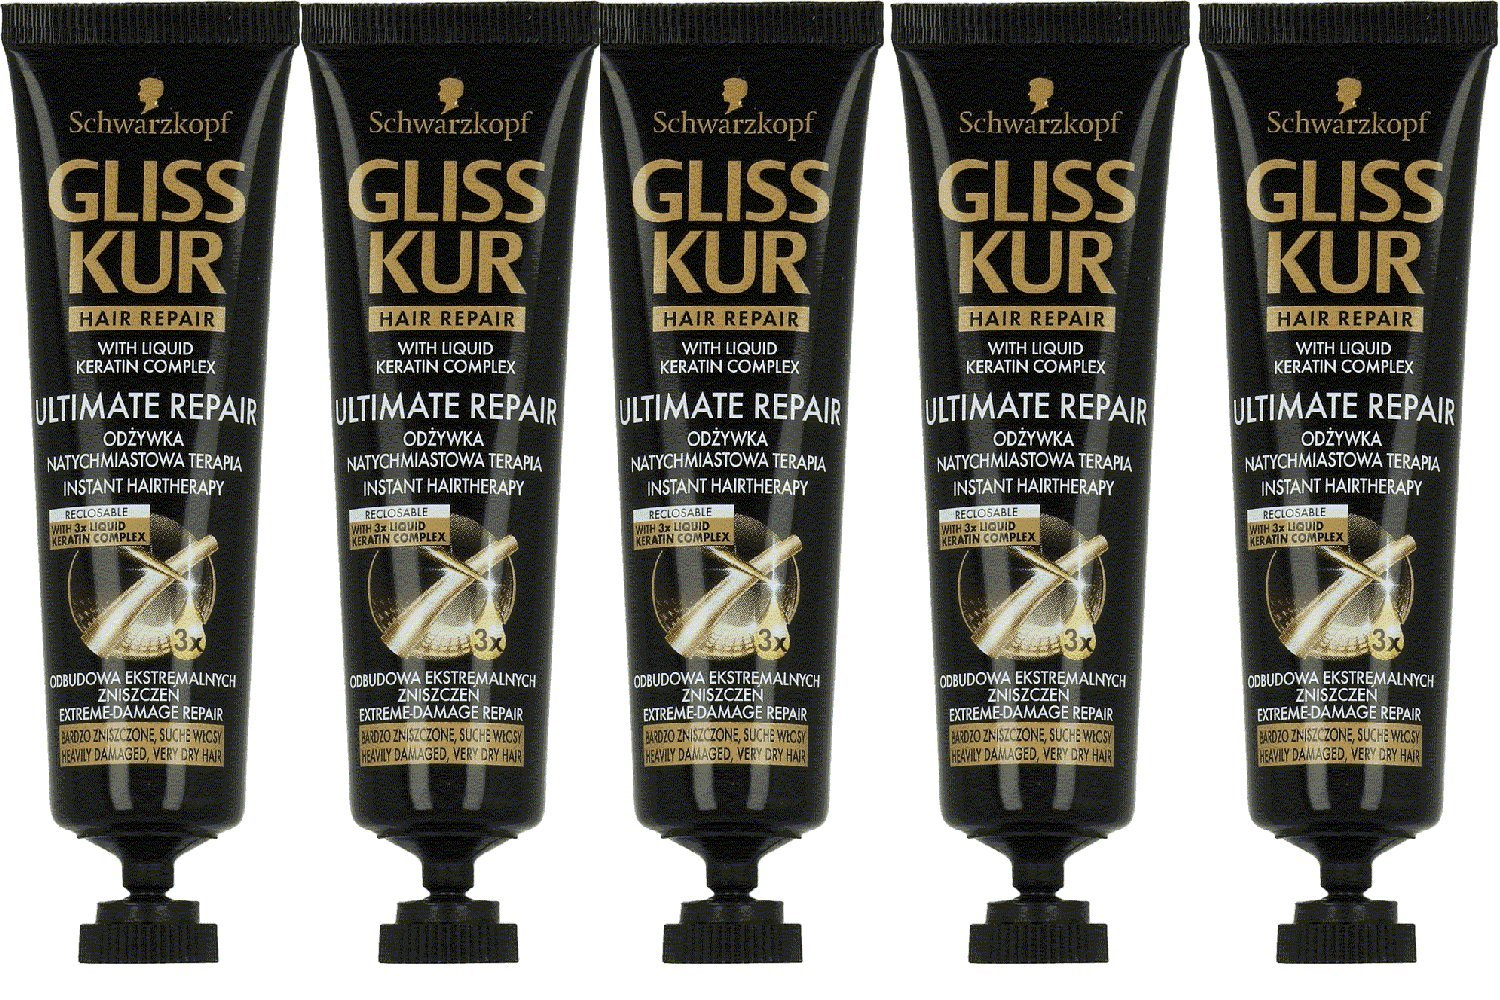 Gliss Kur Ultimate Repair Instant Hairtherapy- 20 Ml - 5 Tubes